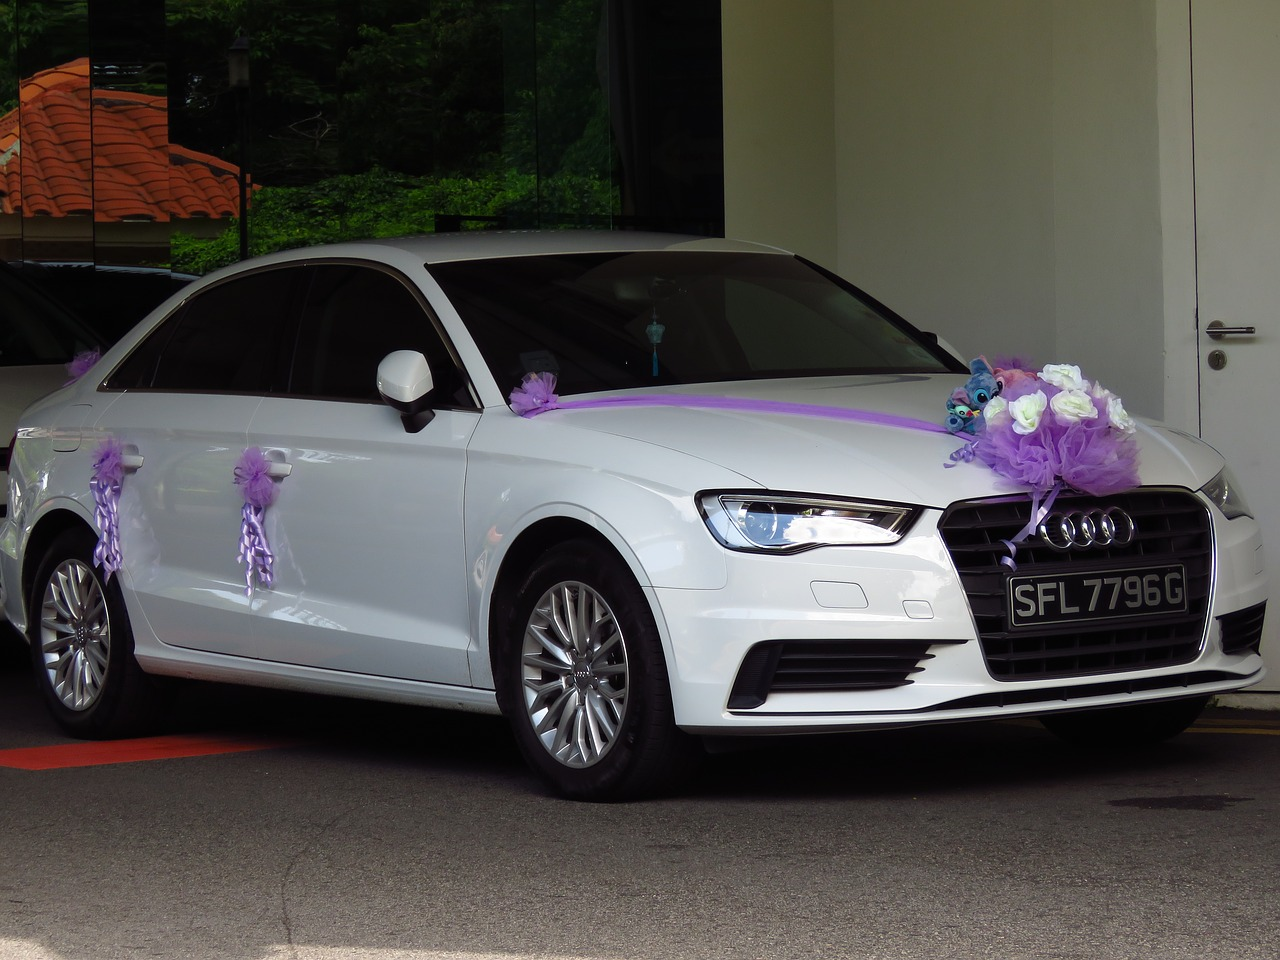 Wedding Car White Car Car Decorating New Car Free Photo From